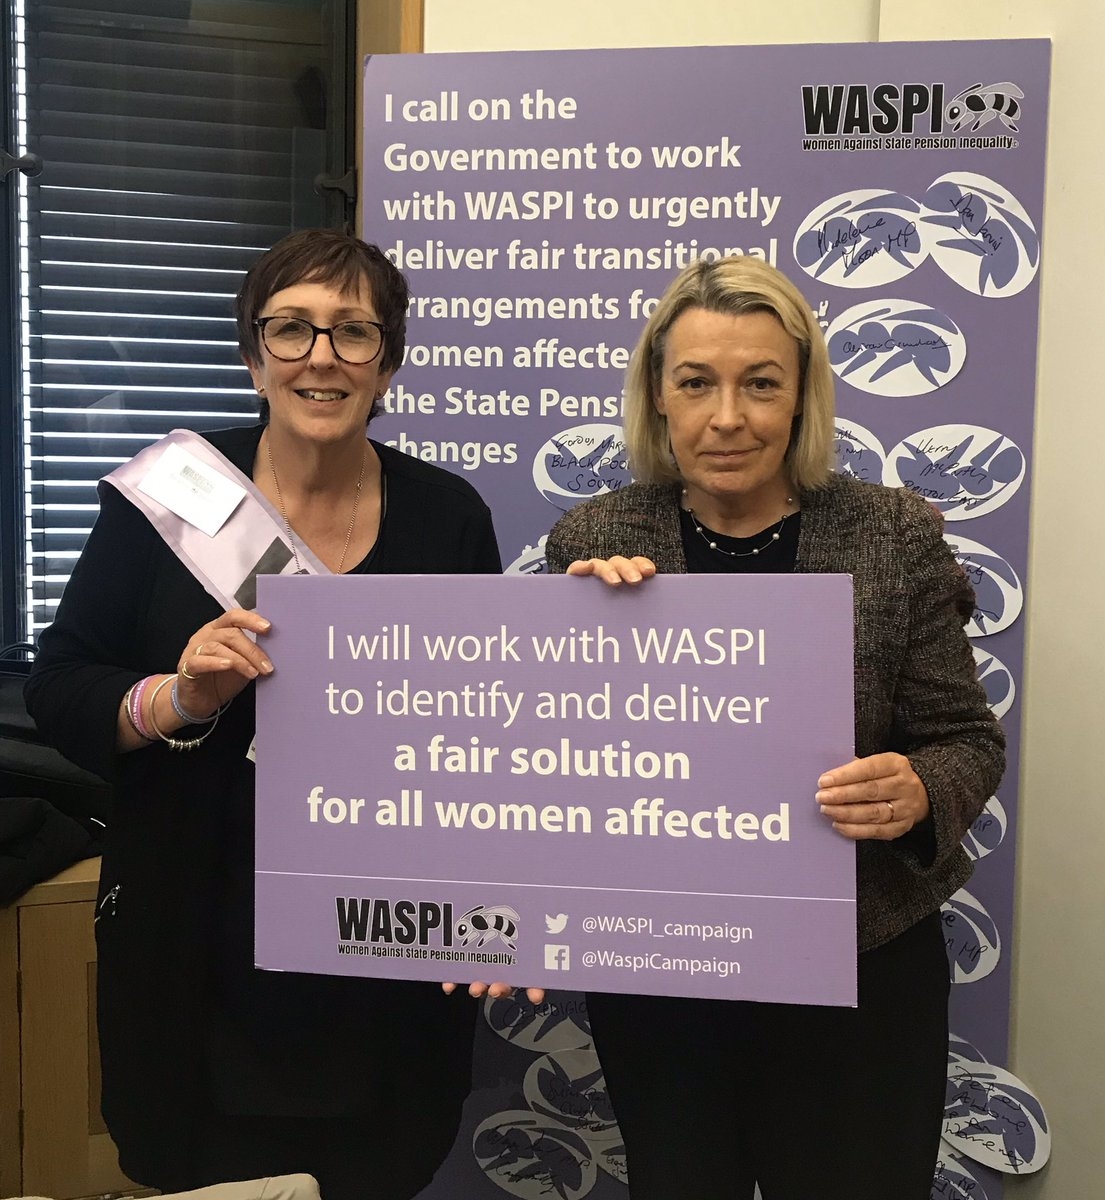 Pleased to support the #WASPI campaign in Parliament today. We need pensions justice for 1950s-born women. And great to see @FlickForeman at the event